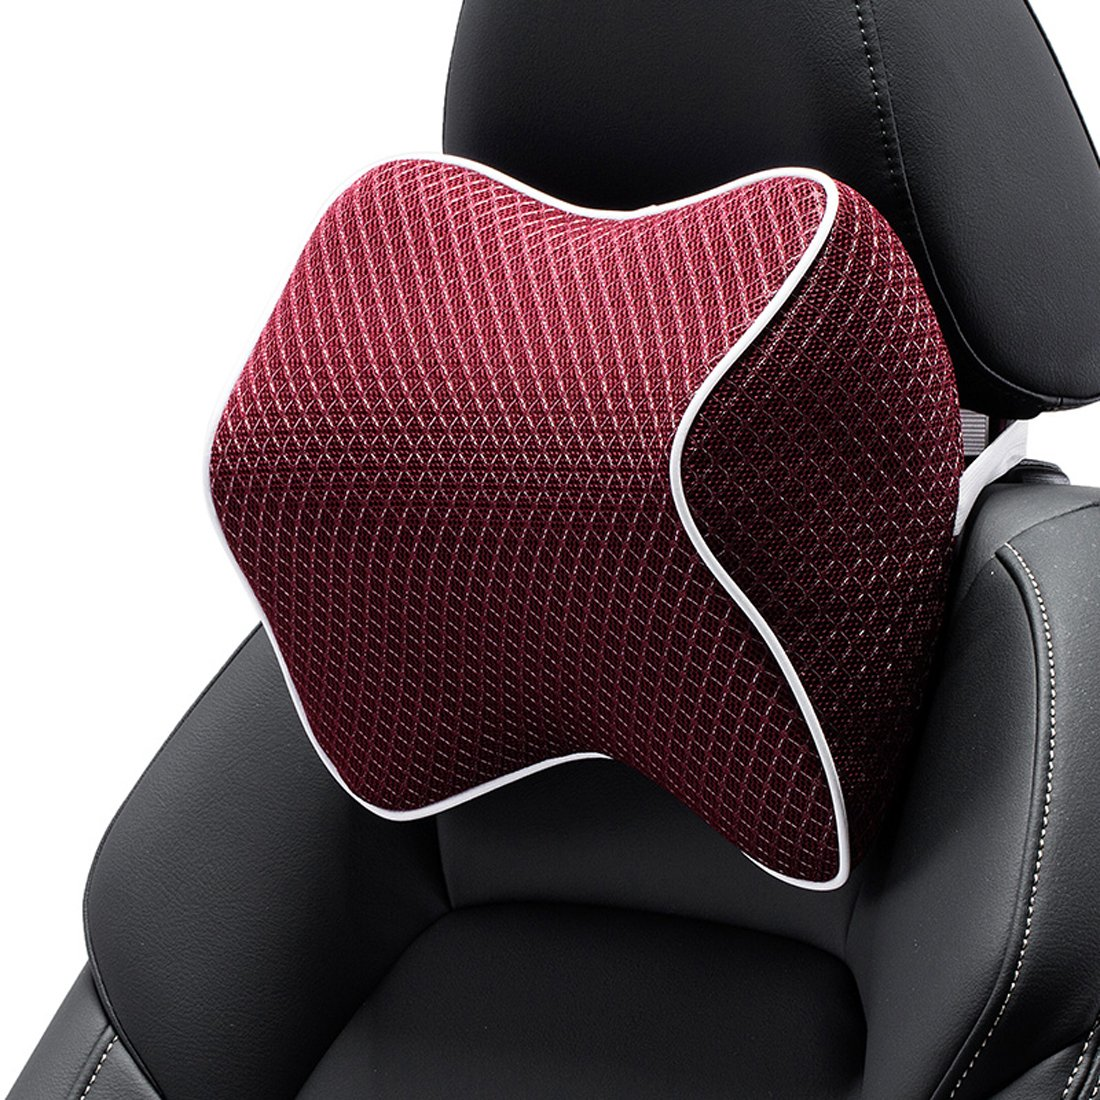 Wishlanlan 1 Pcs Ice Silk Fashion Comfortable Car Neck Pillow Headrest Seat WISCP#003 (Brown)